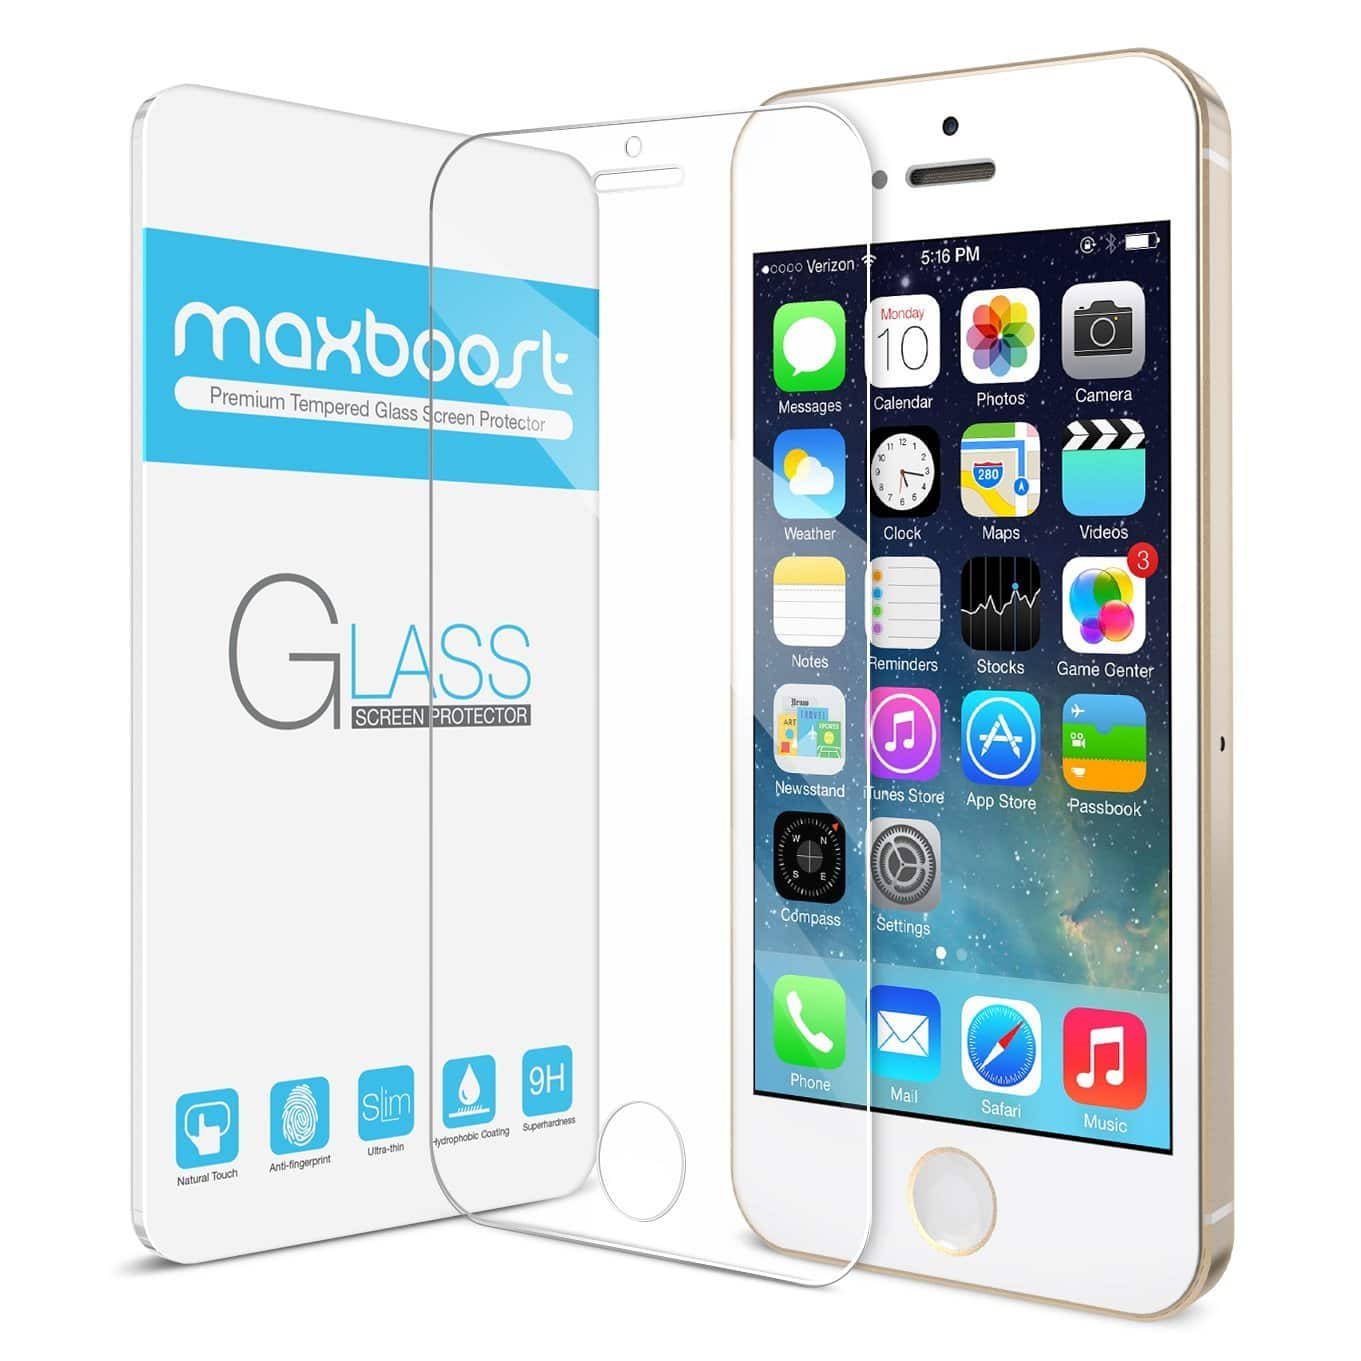 Maxboost Thanksgiving Sale: iPhone 5/5S/5C Glass Screen Protector, 5/5S Battery Case. 6/6S/Plus Cases, POWER BANK From $0.99 FS w/ Amazon Prime